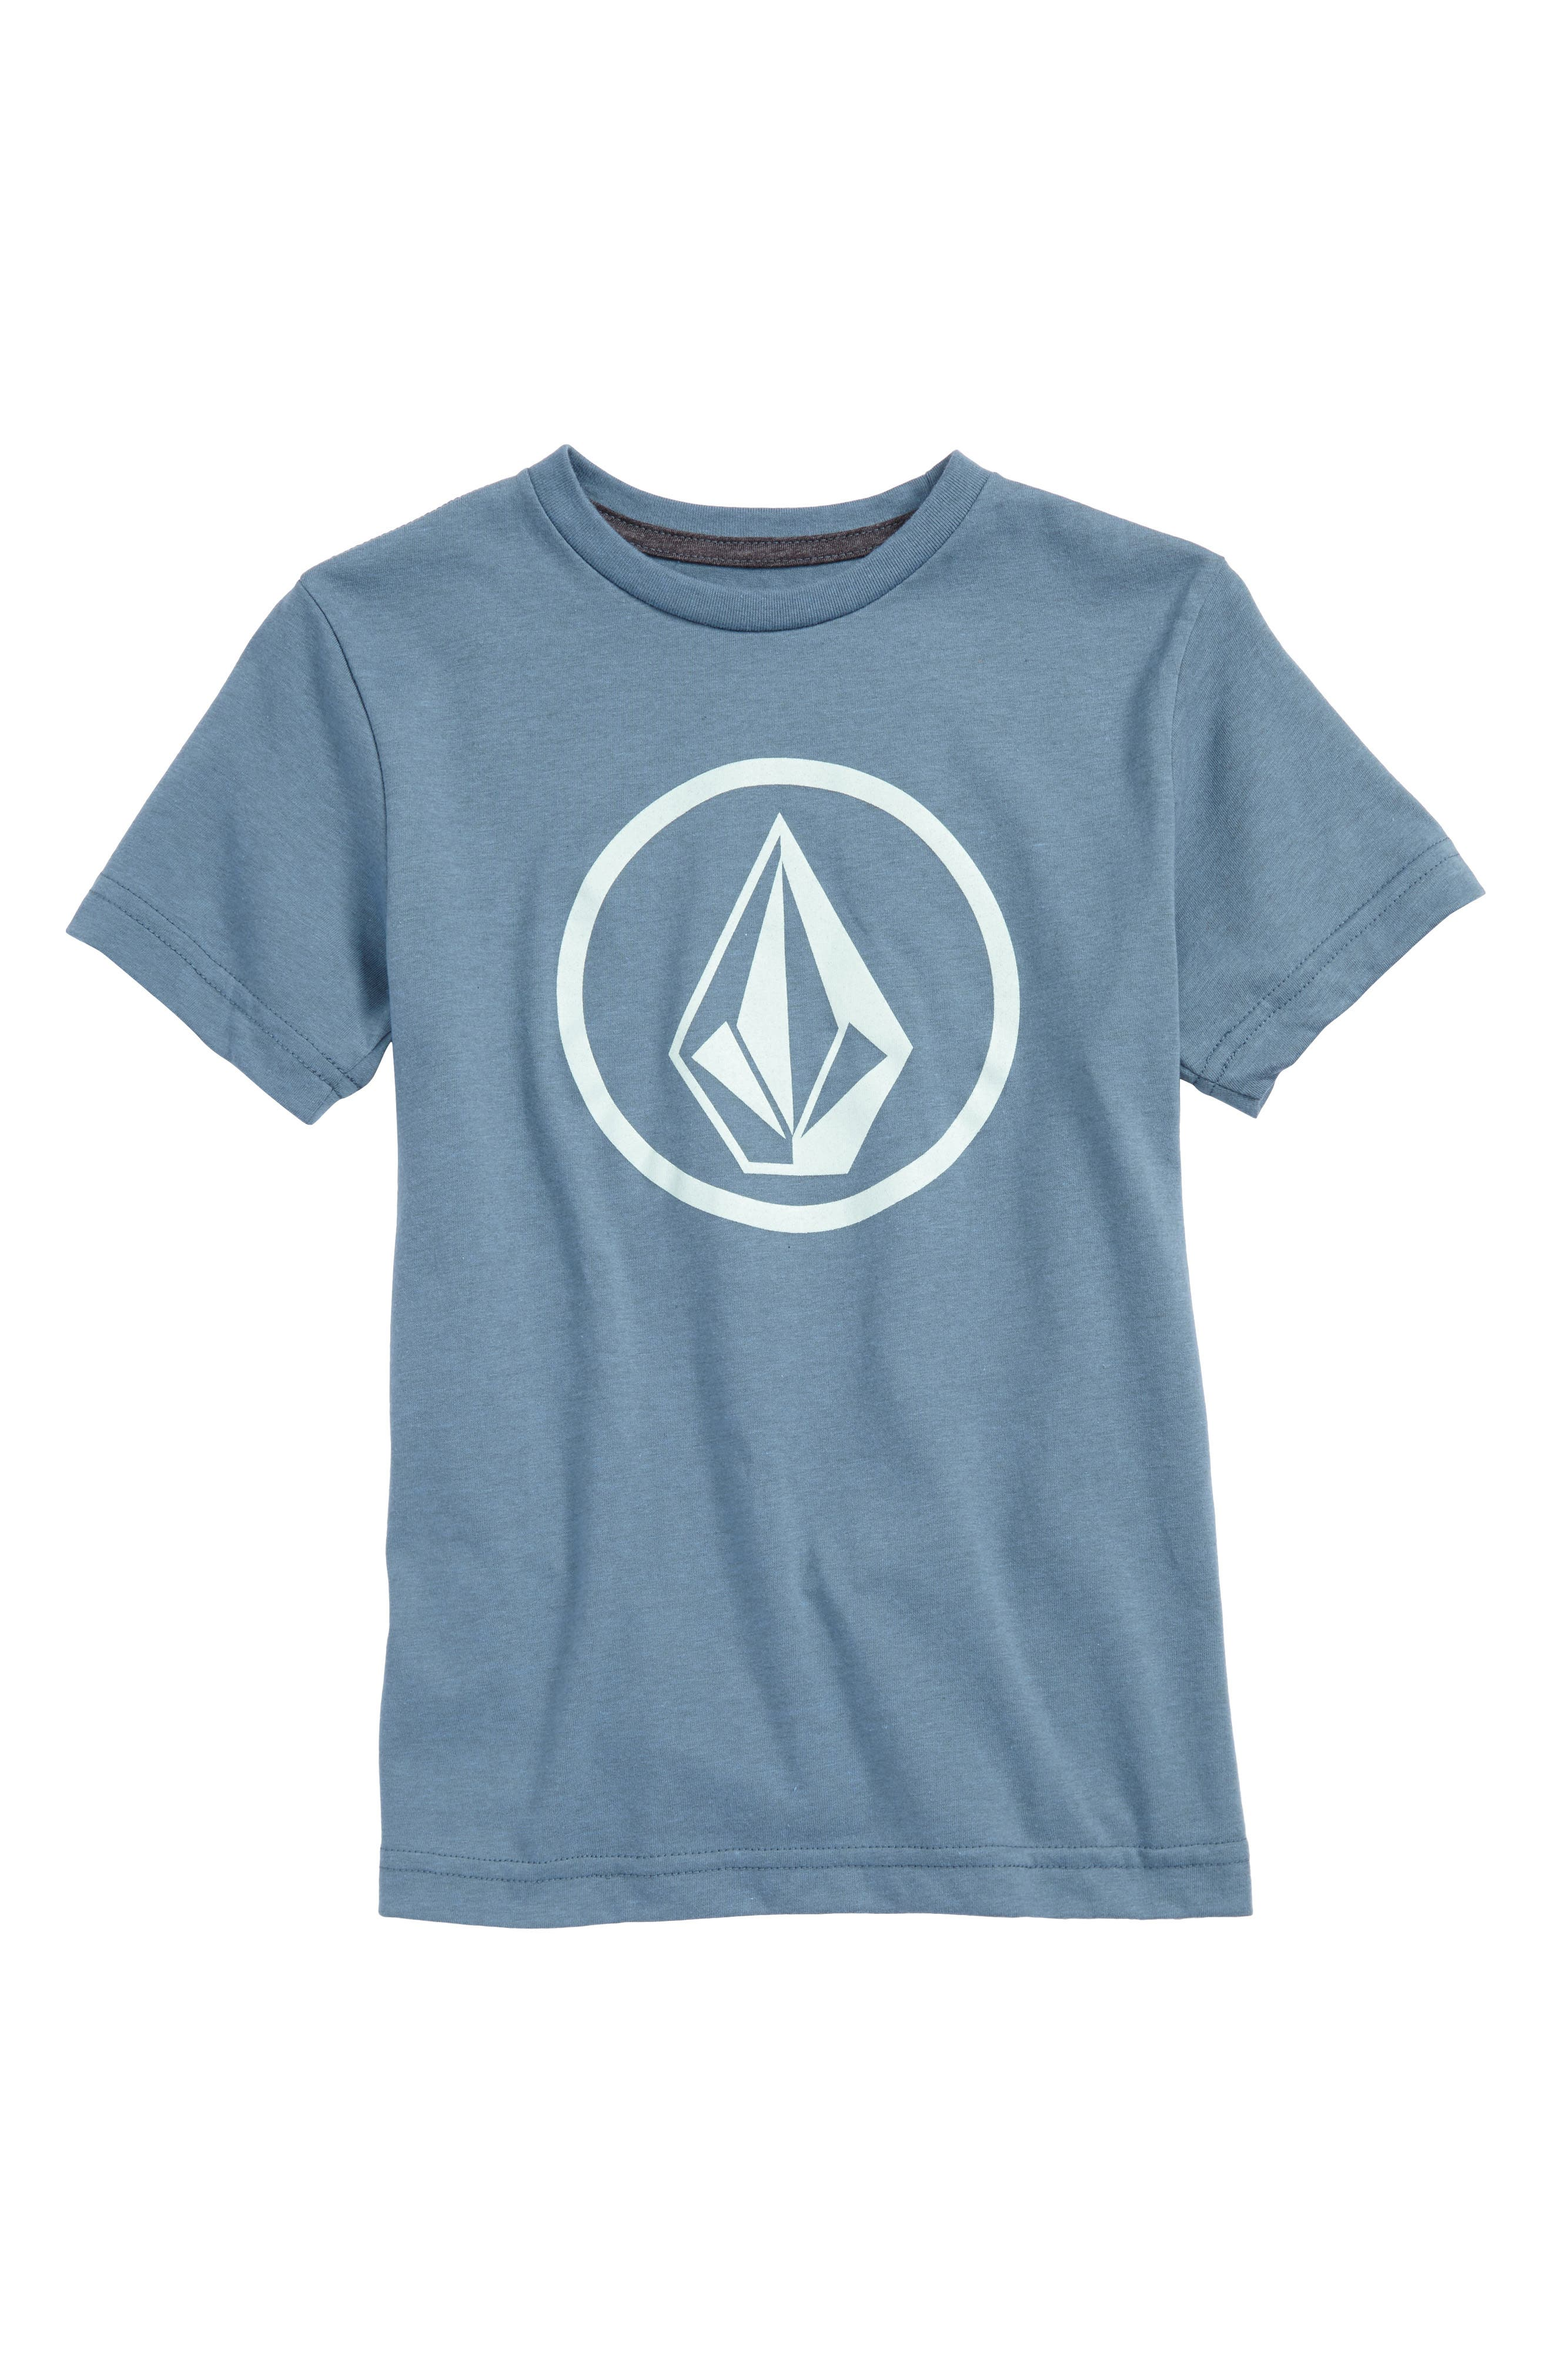 Alternate Image 1 Selected - Volcom Circle Stone Logo Graphic T-Shirt (Toddler Boys & Little Boys)